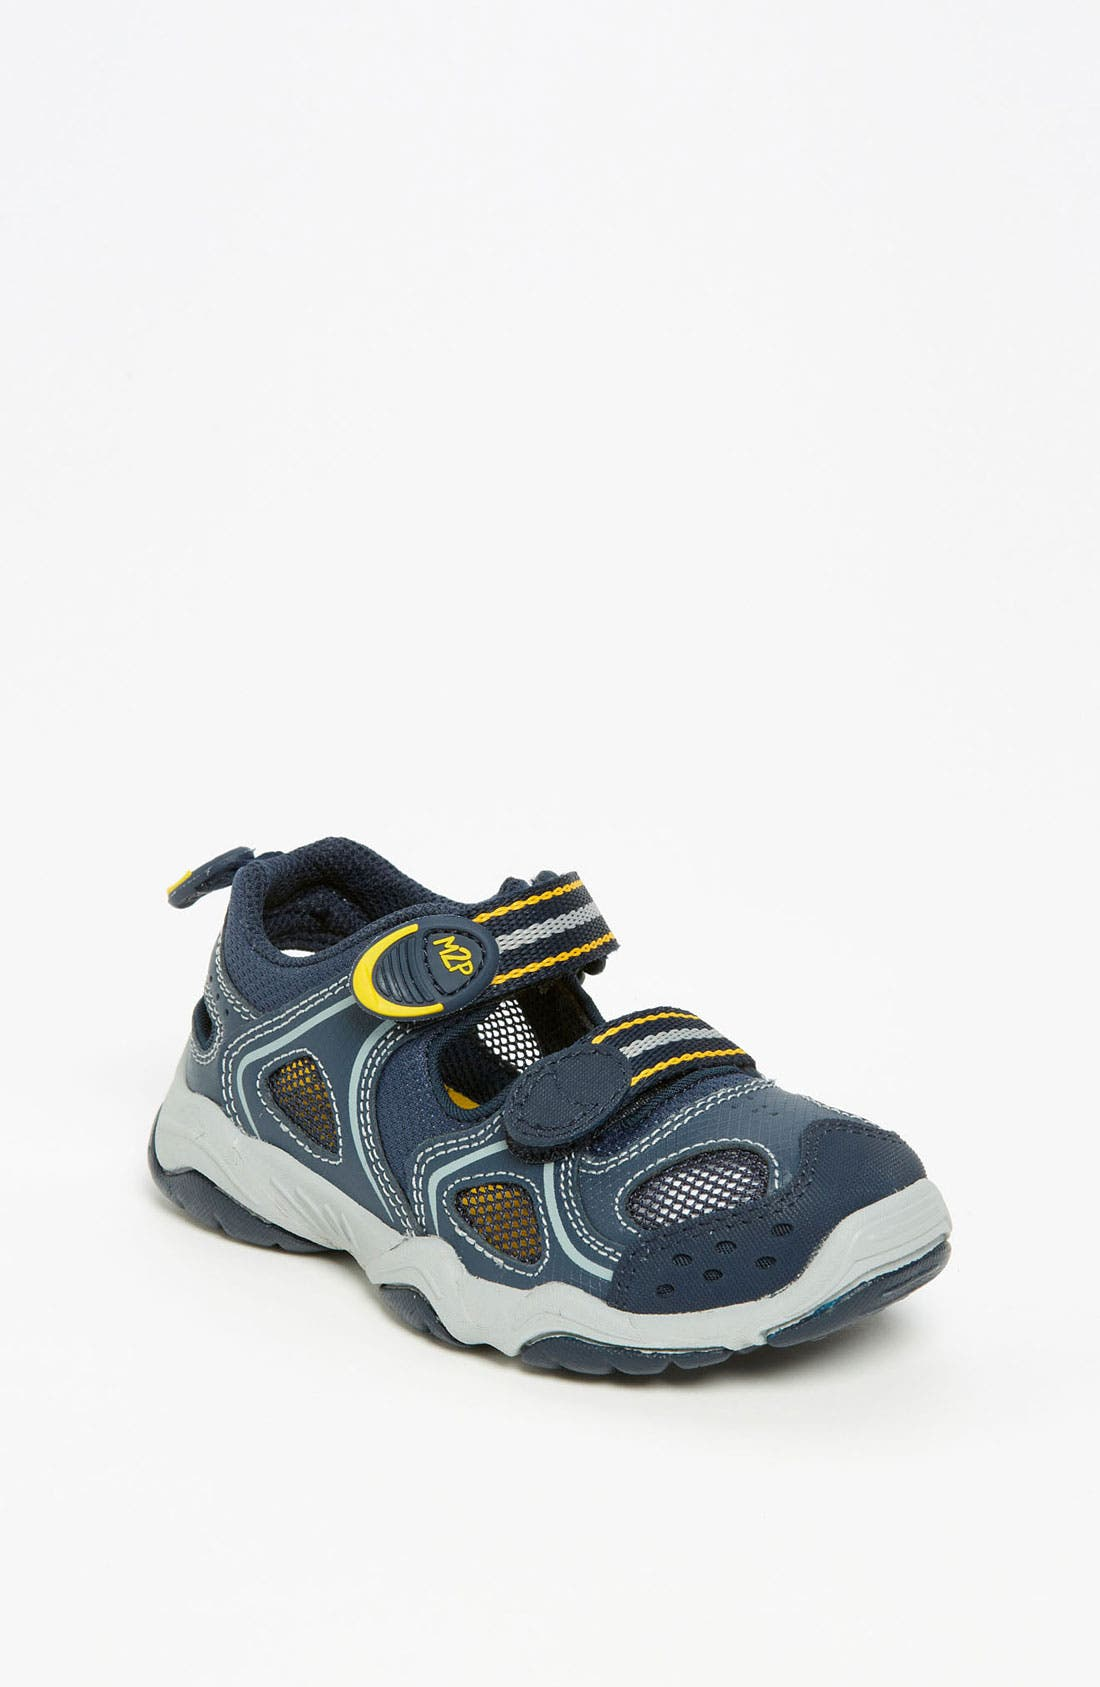 Main Image - Stride Rite 'Perry' Sandal (Toddler)